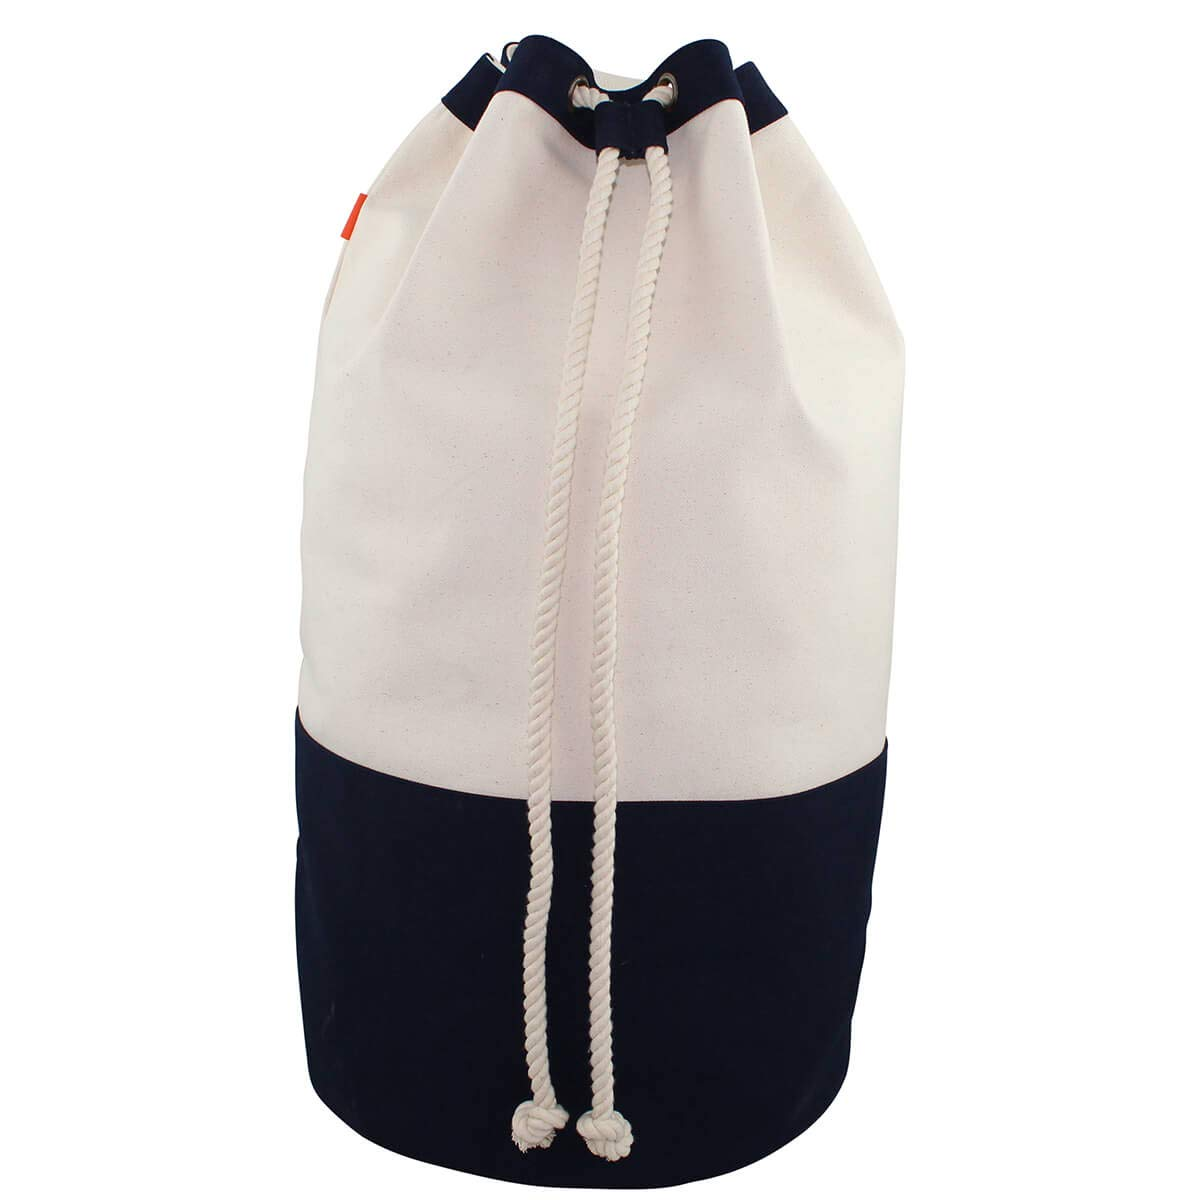 Navy Blue College Laundry Backpack and Hamper CB Station Laundry Duffel Bag and Durable 18 oz Cotton Canvas Eco-Friendly